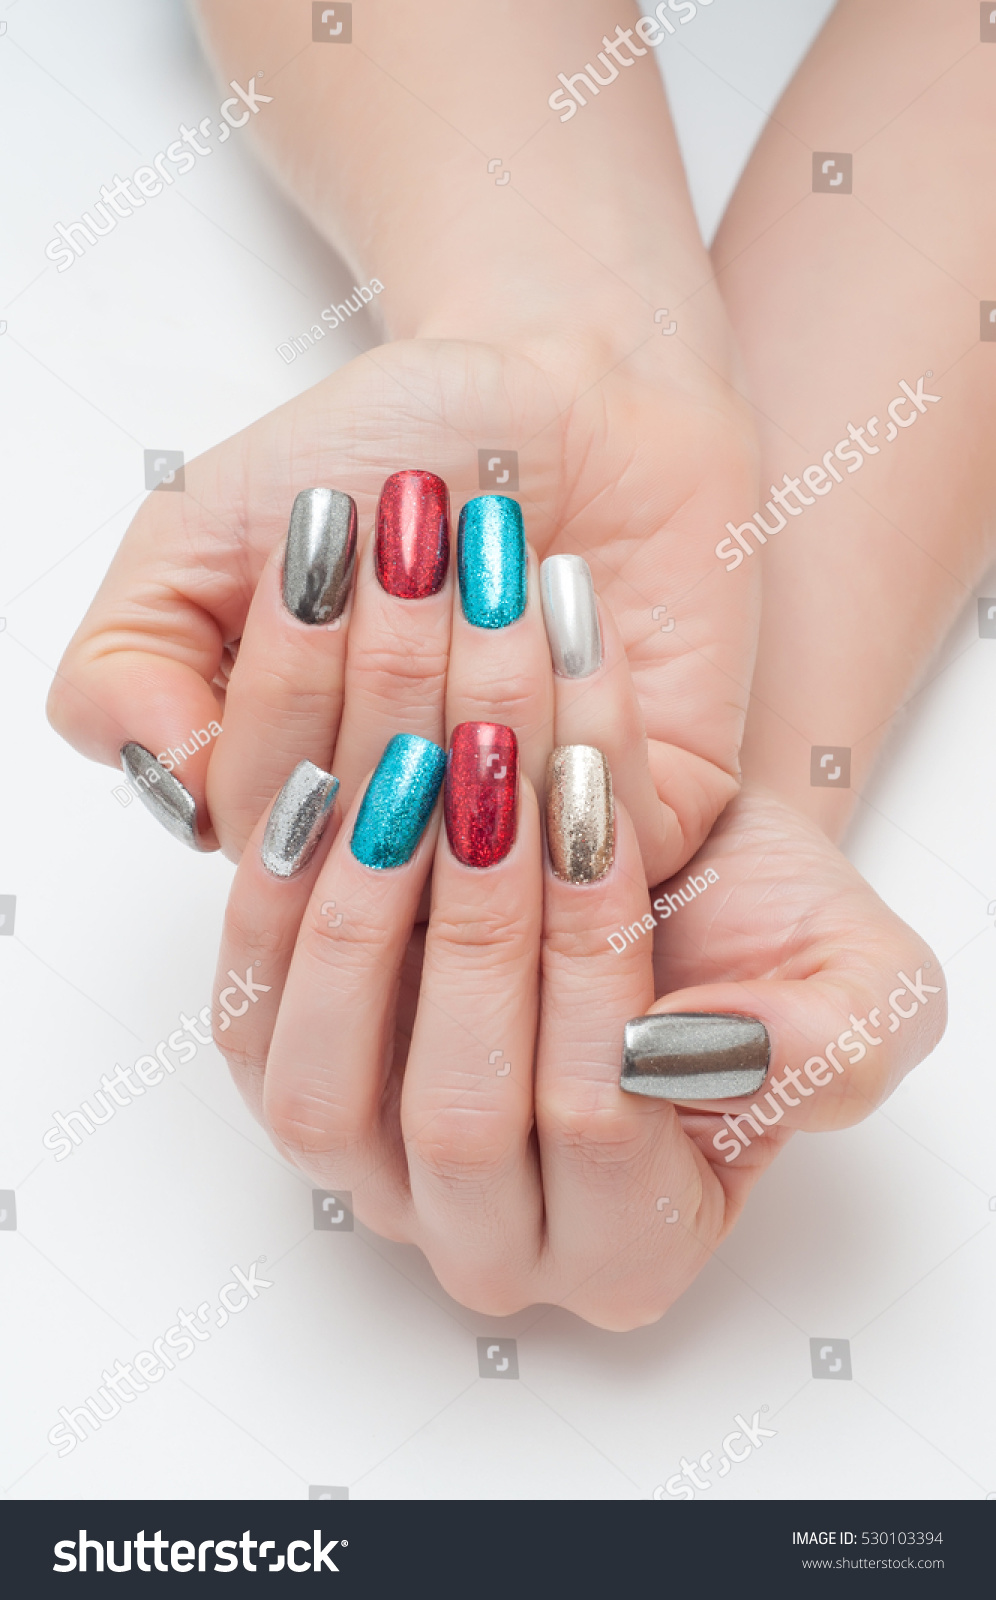 New Years Manicure On Long Square Stock Photo 530103394 - Shutterstock